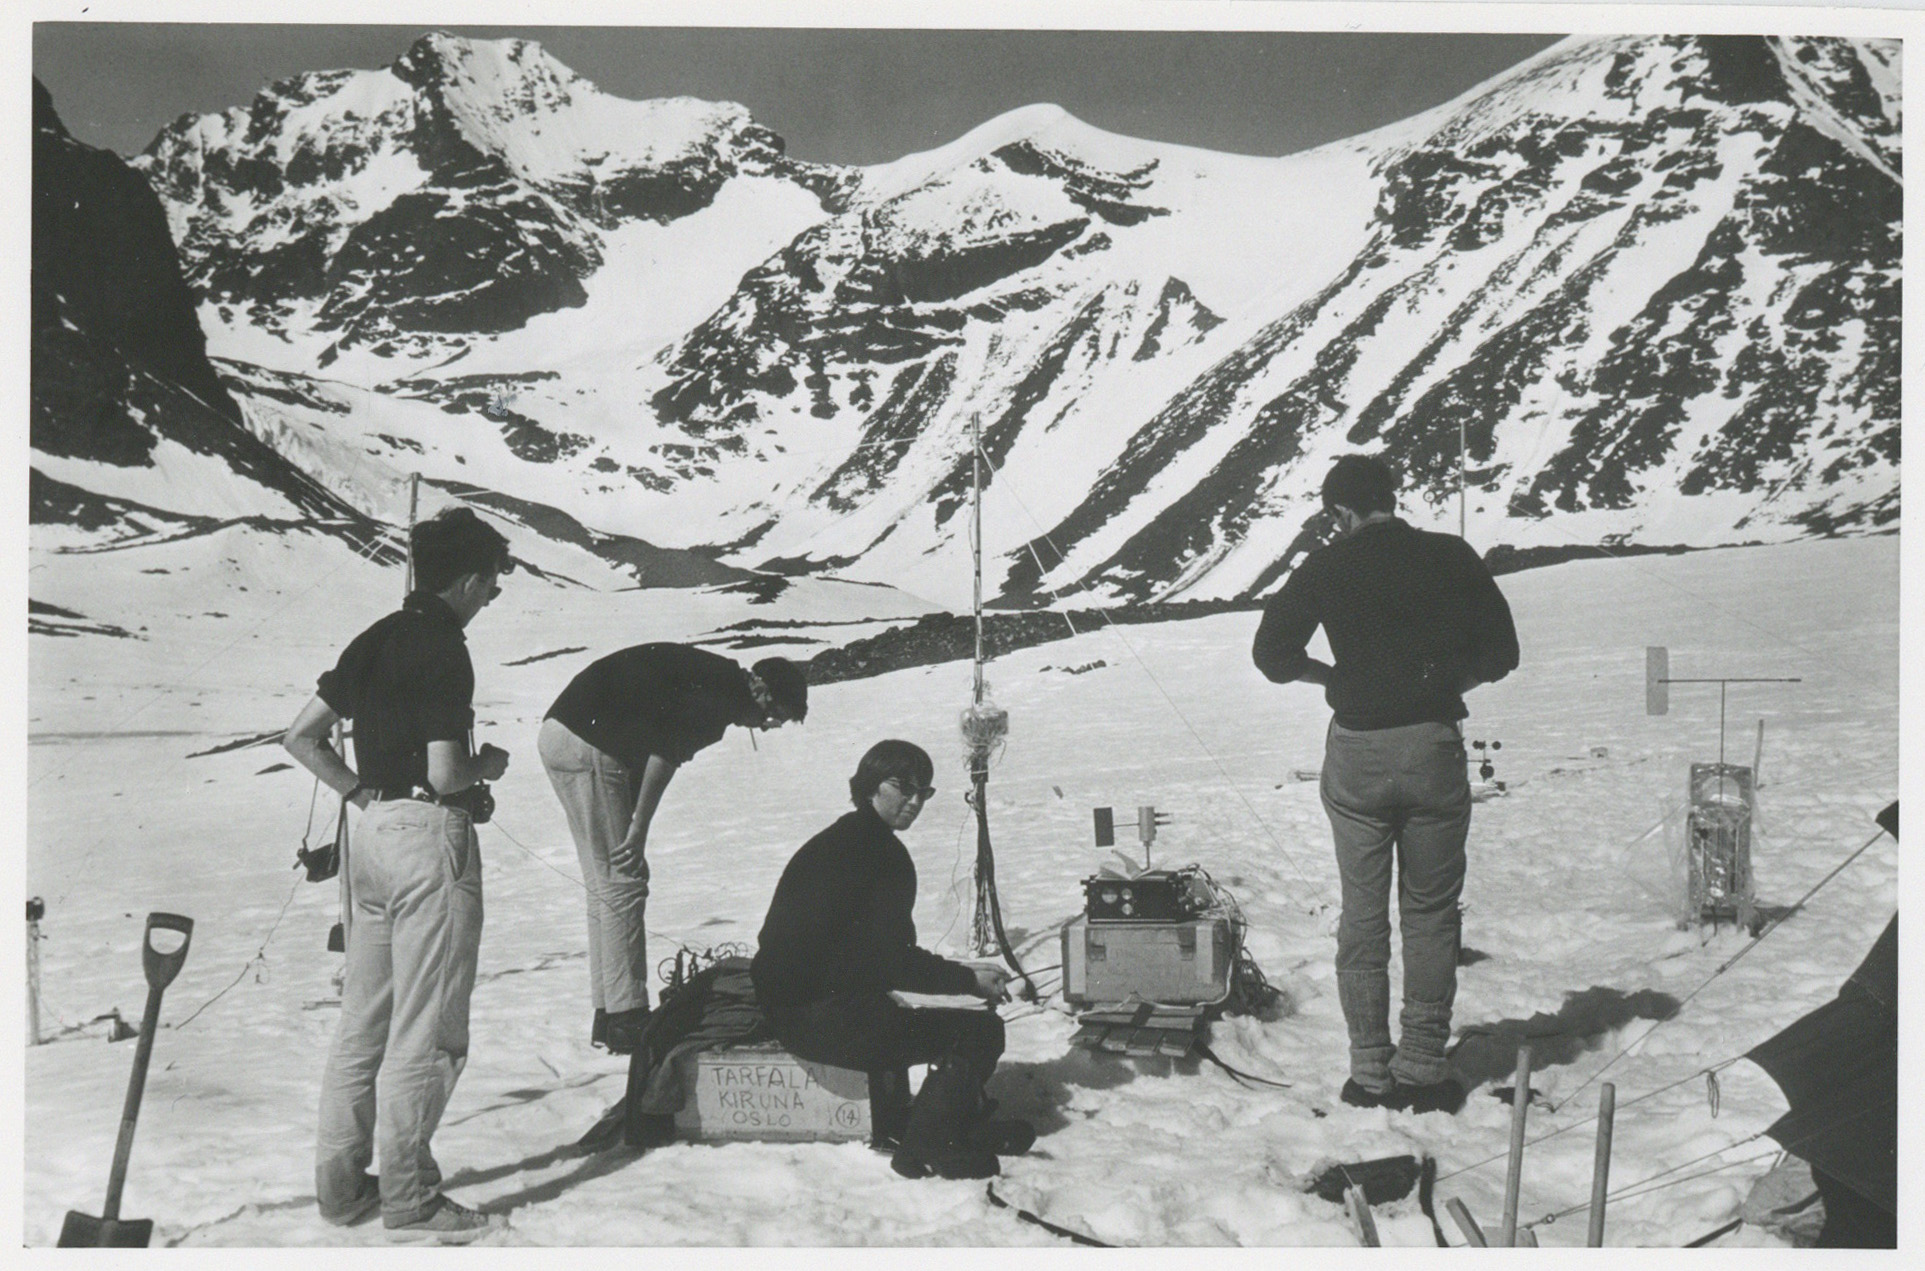 Mountain expedition 1966